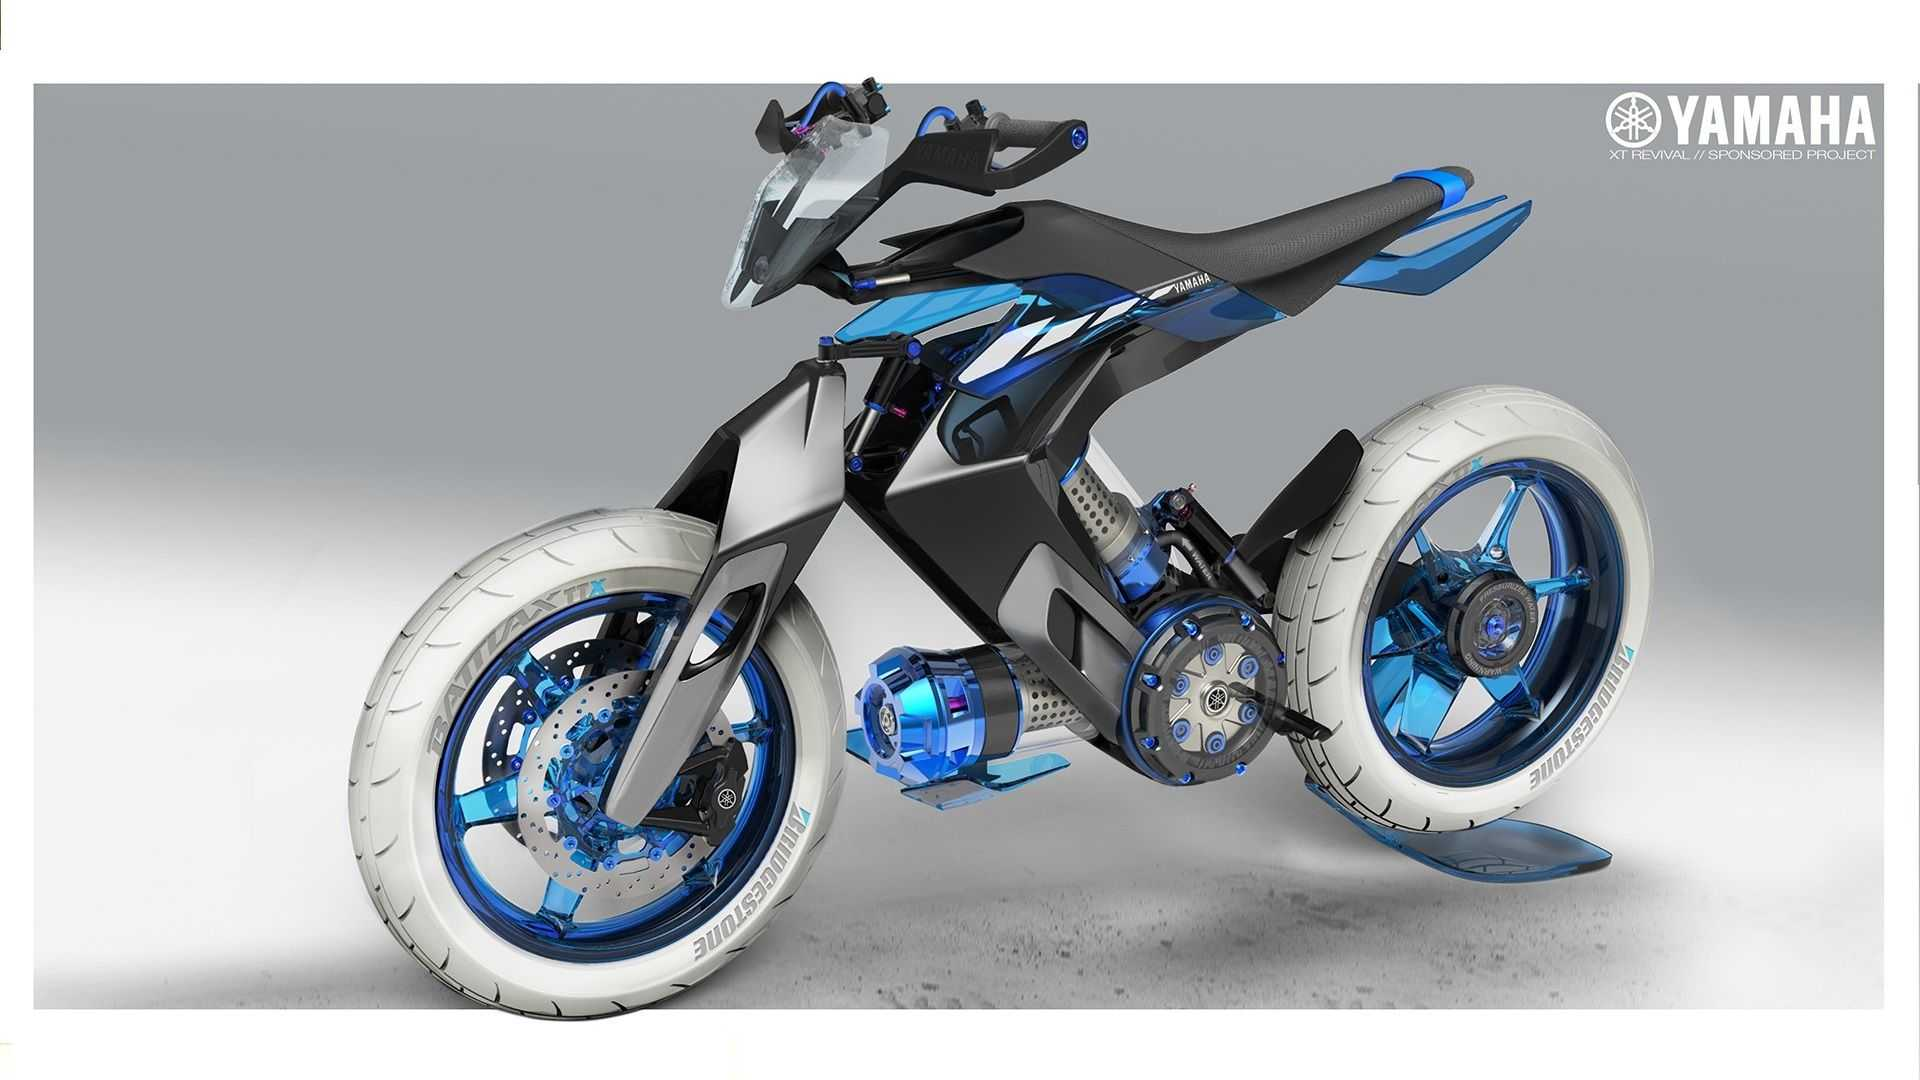 Yamaha XT 500 H2O Concept Imagines Pure Water Power For 2025